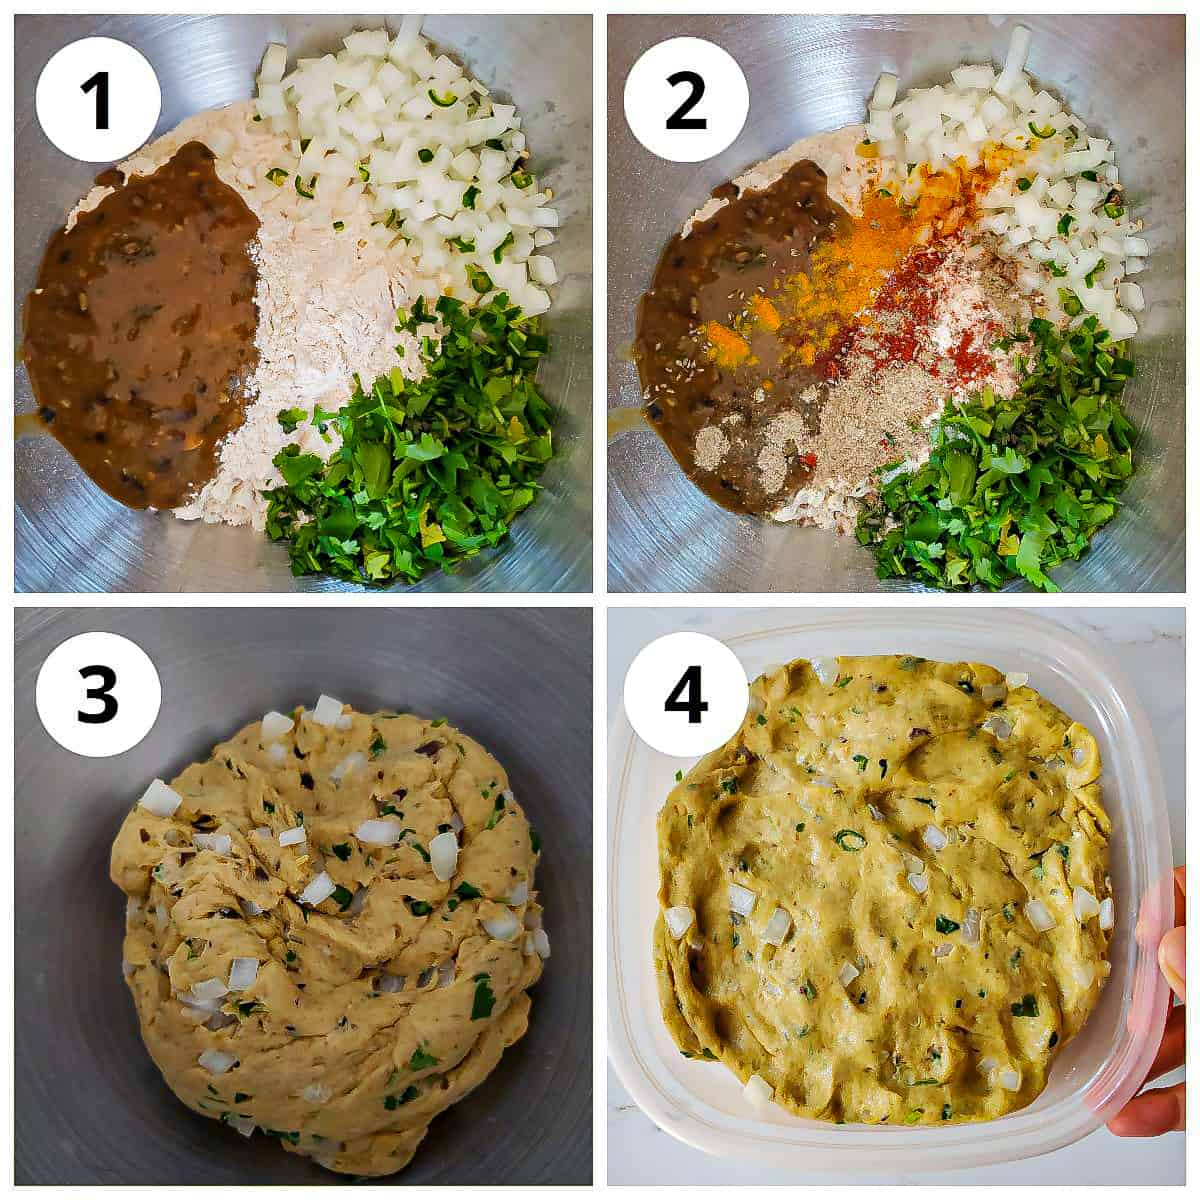 Step by step photos to show how to make the dal paratha dough